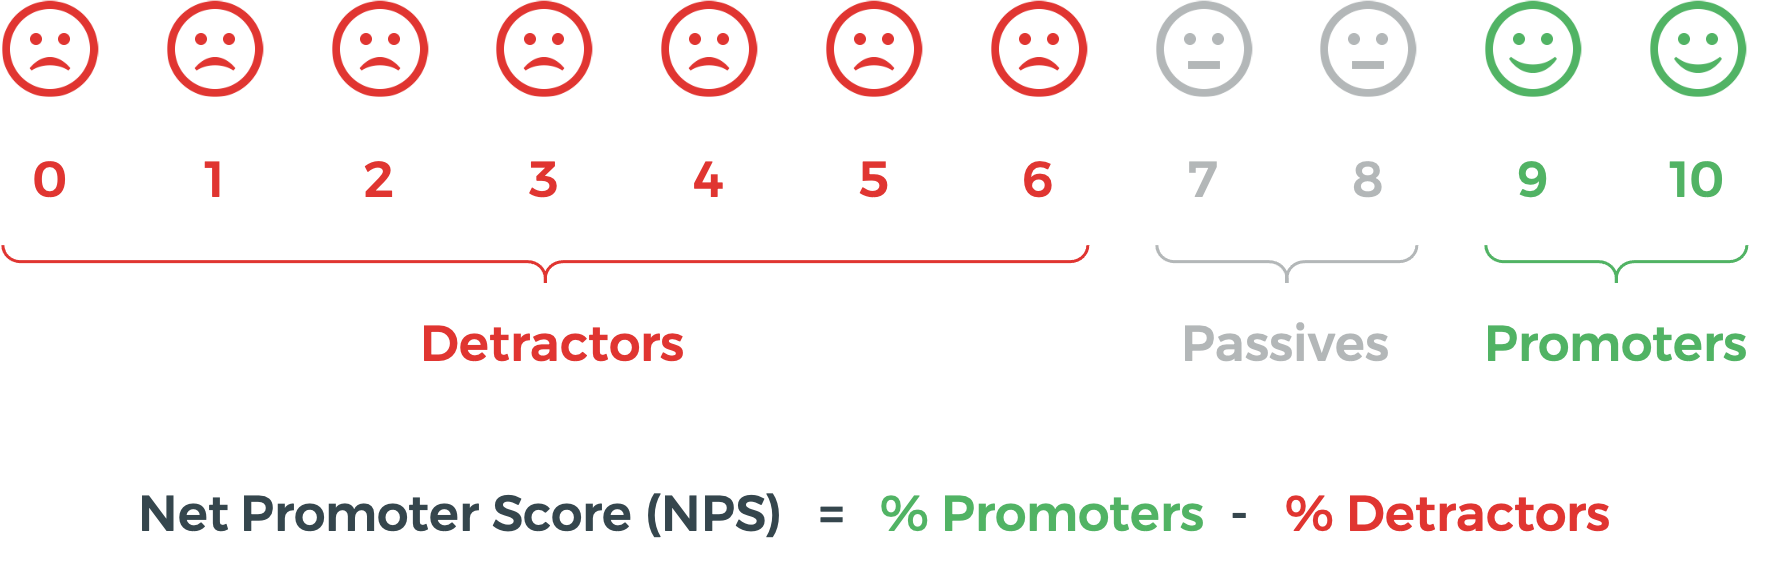 Calculation of Net Promoter Score